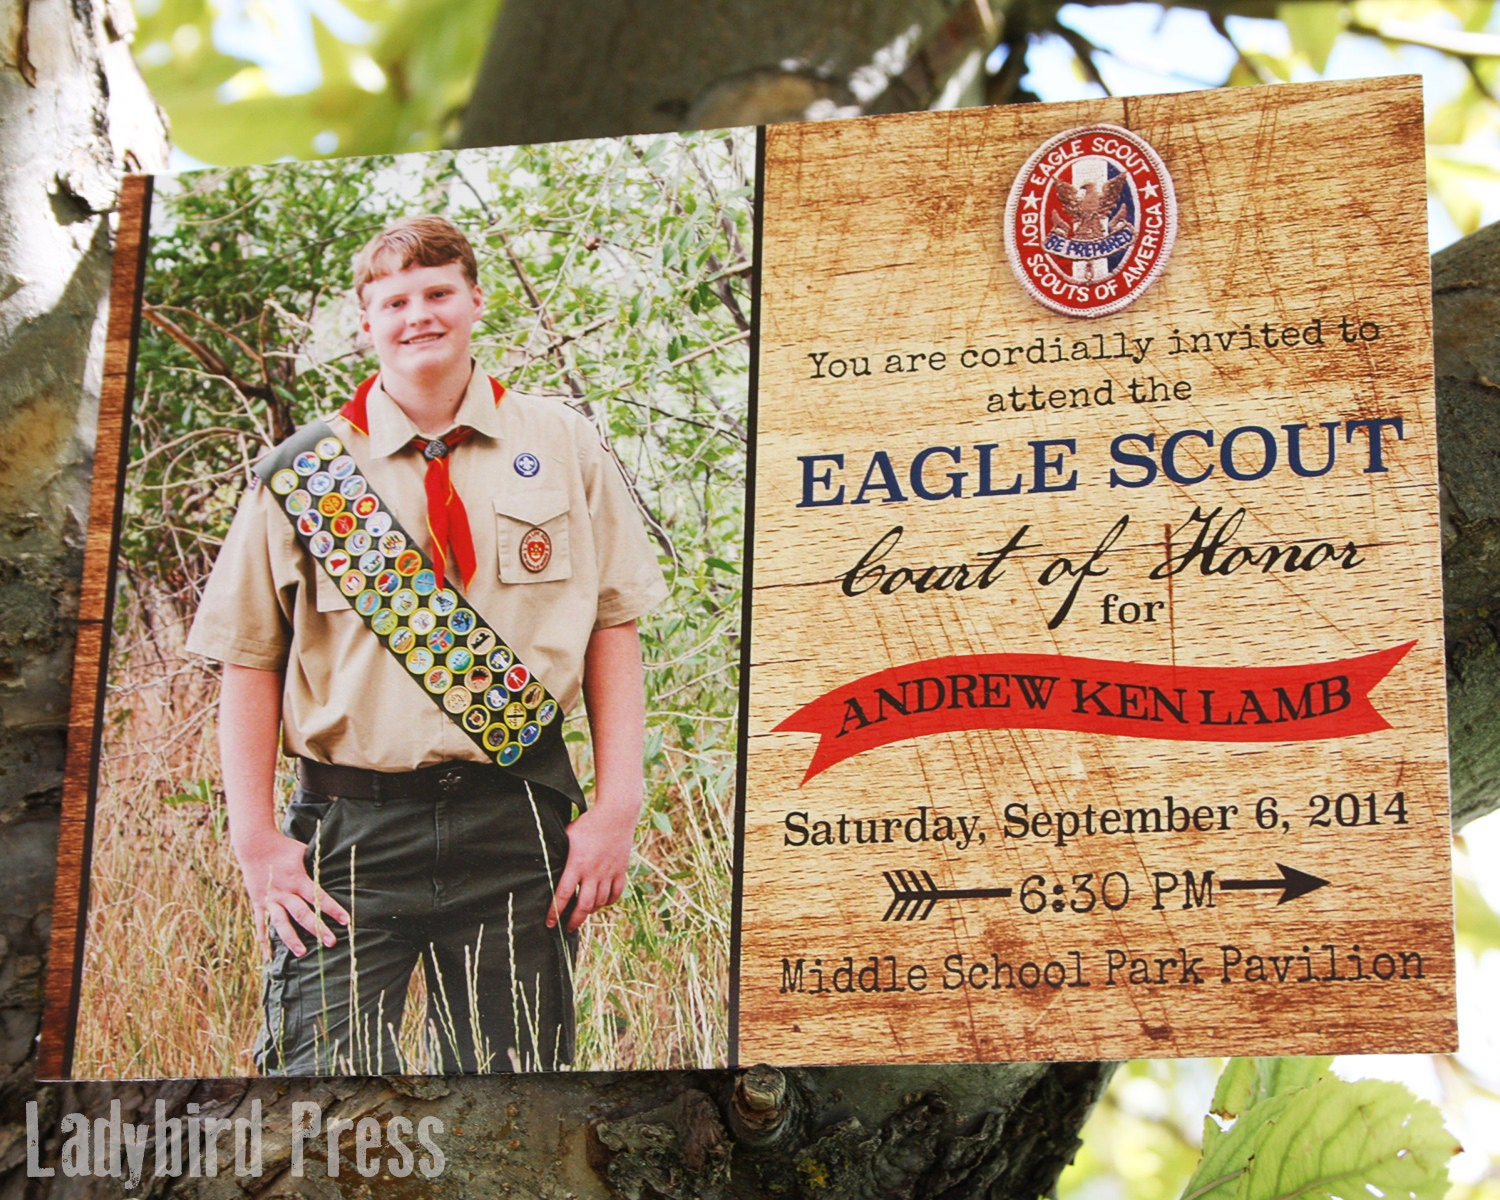 Eagle scout court of honor – Eagle Scout Invitation Cards